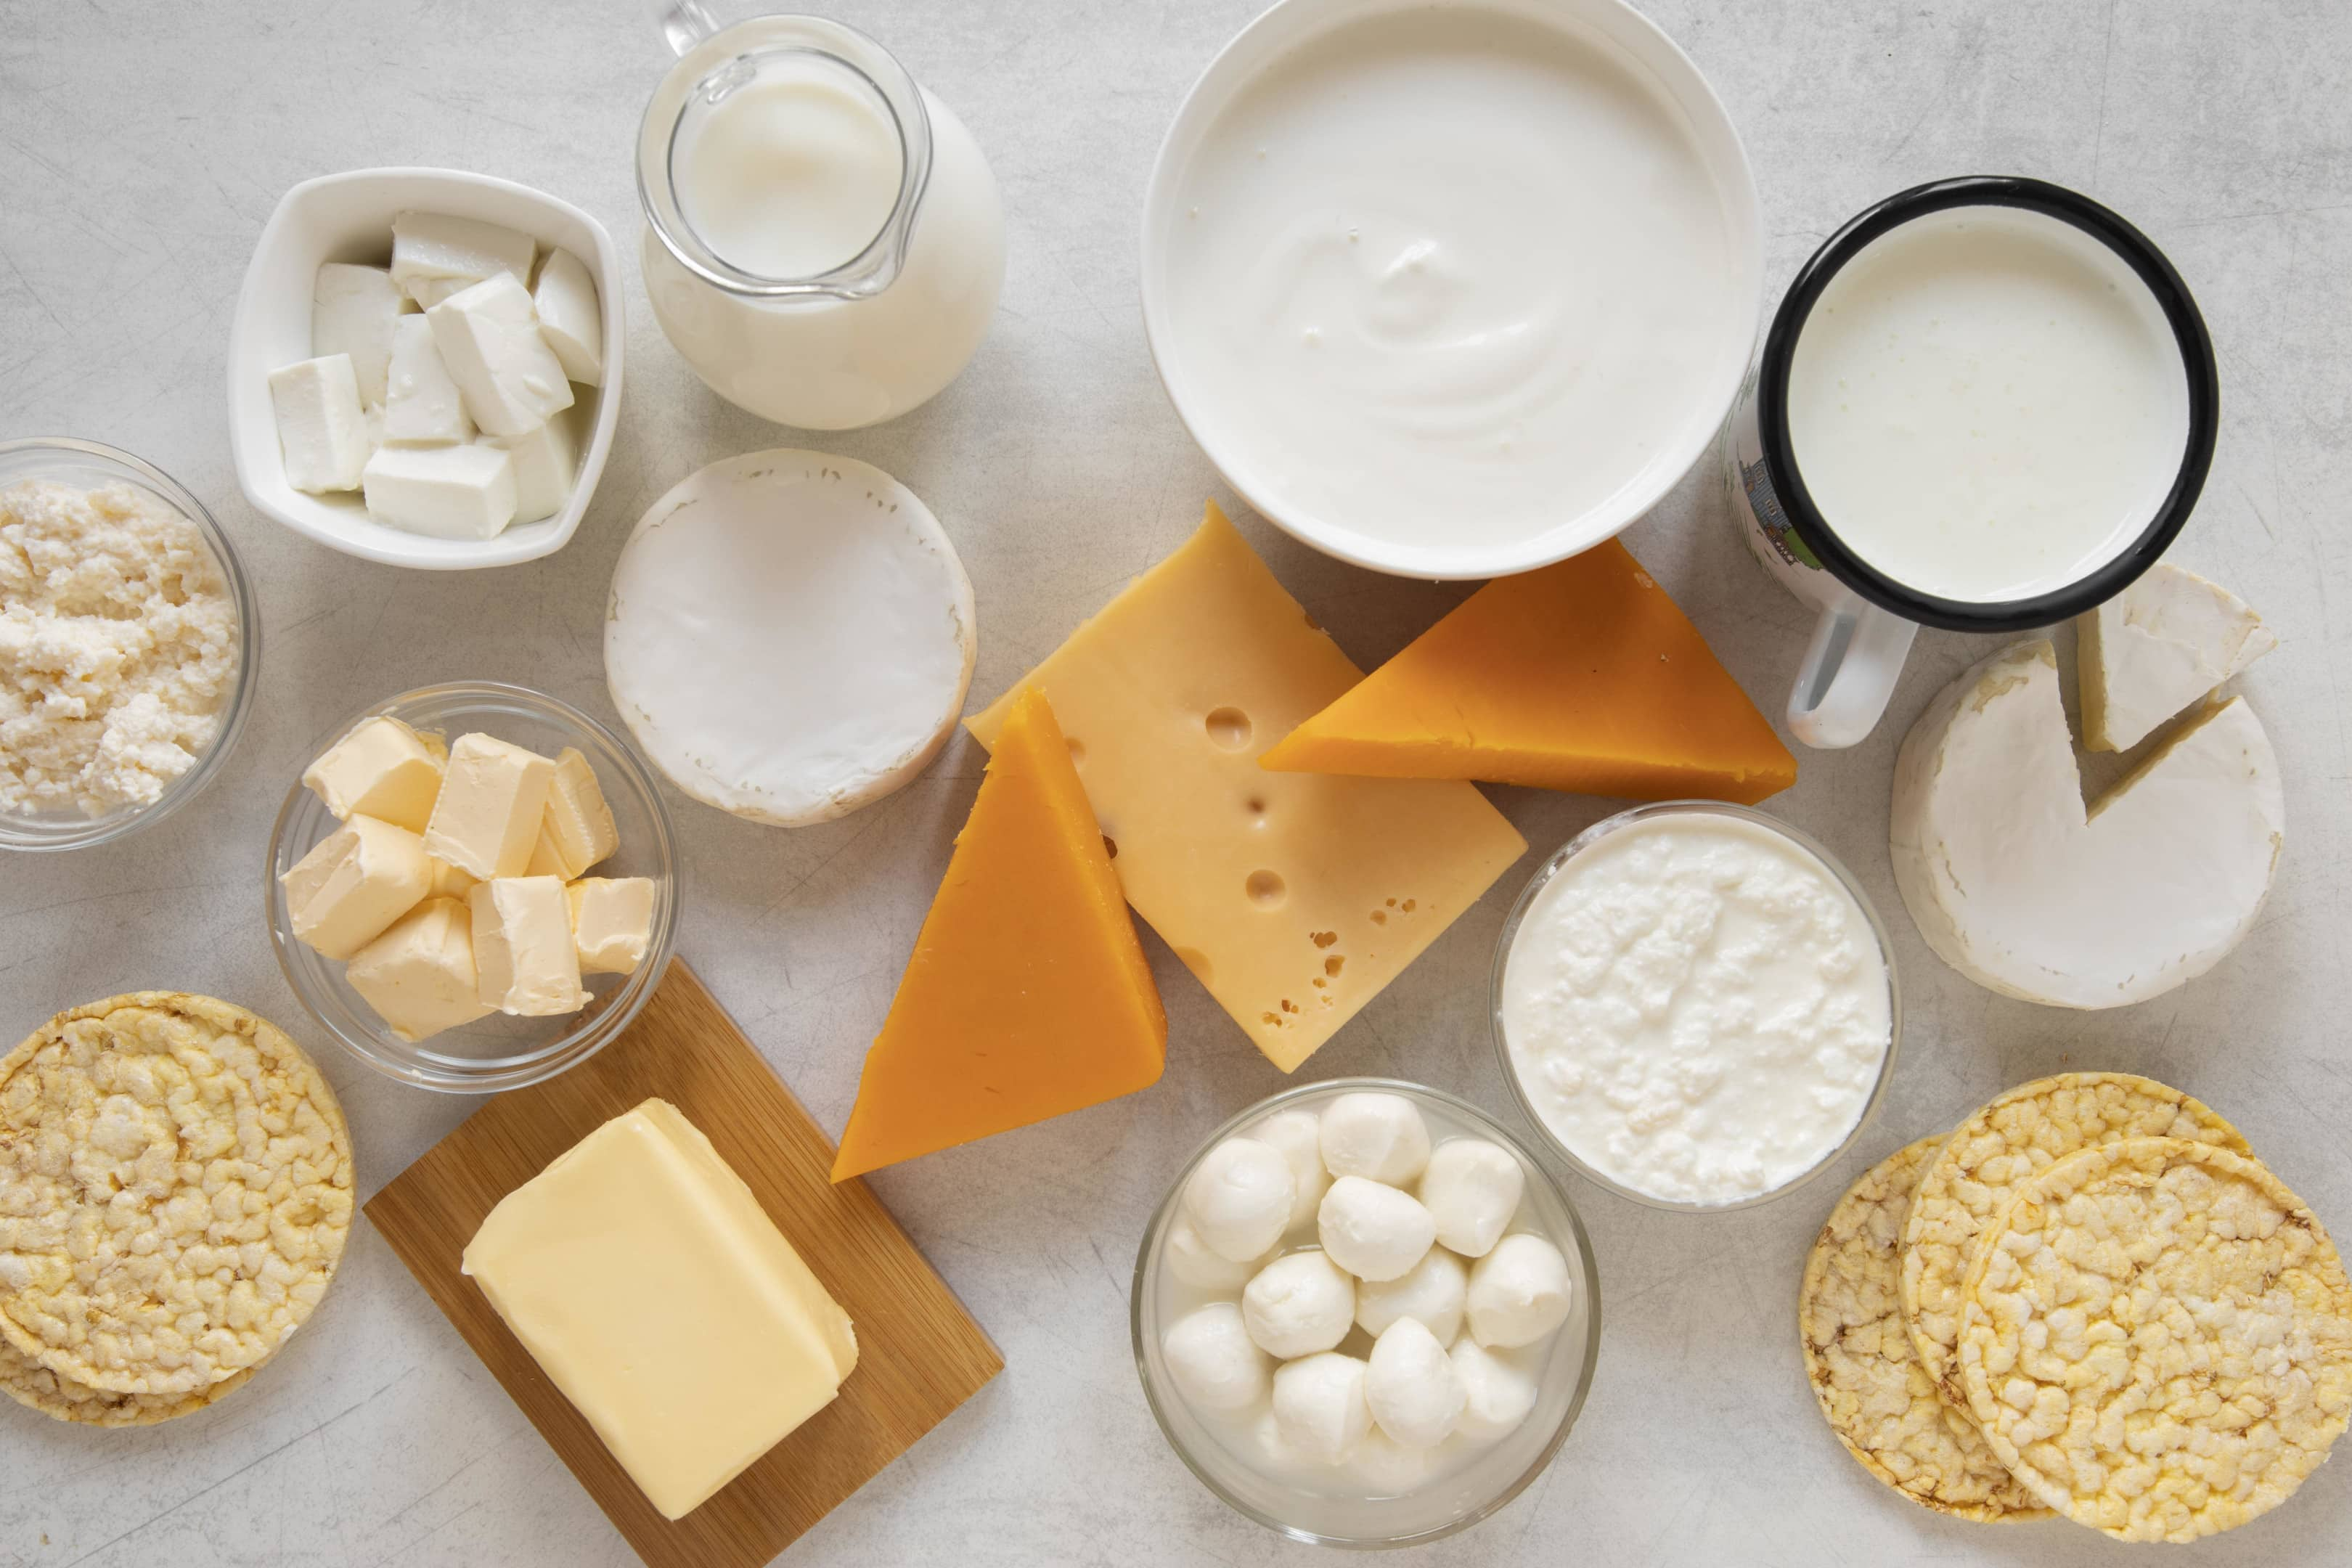 Dairy products assortment on white table